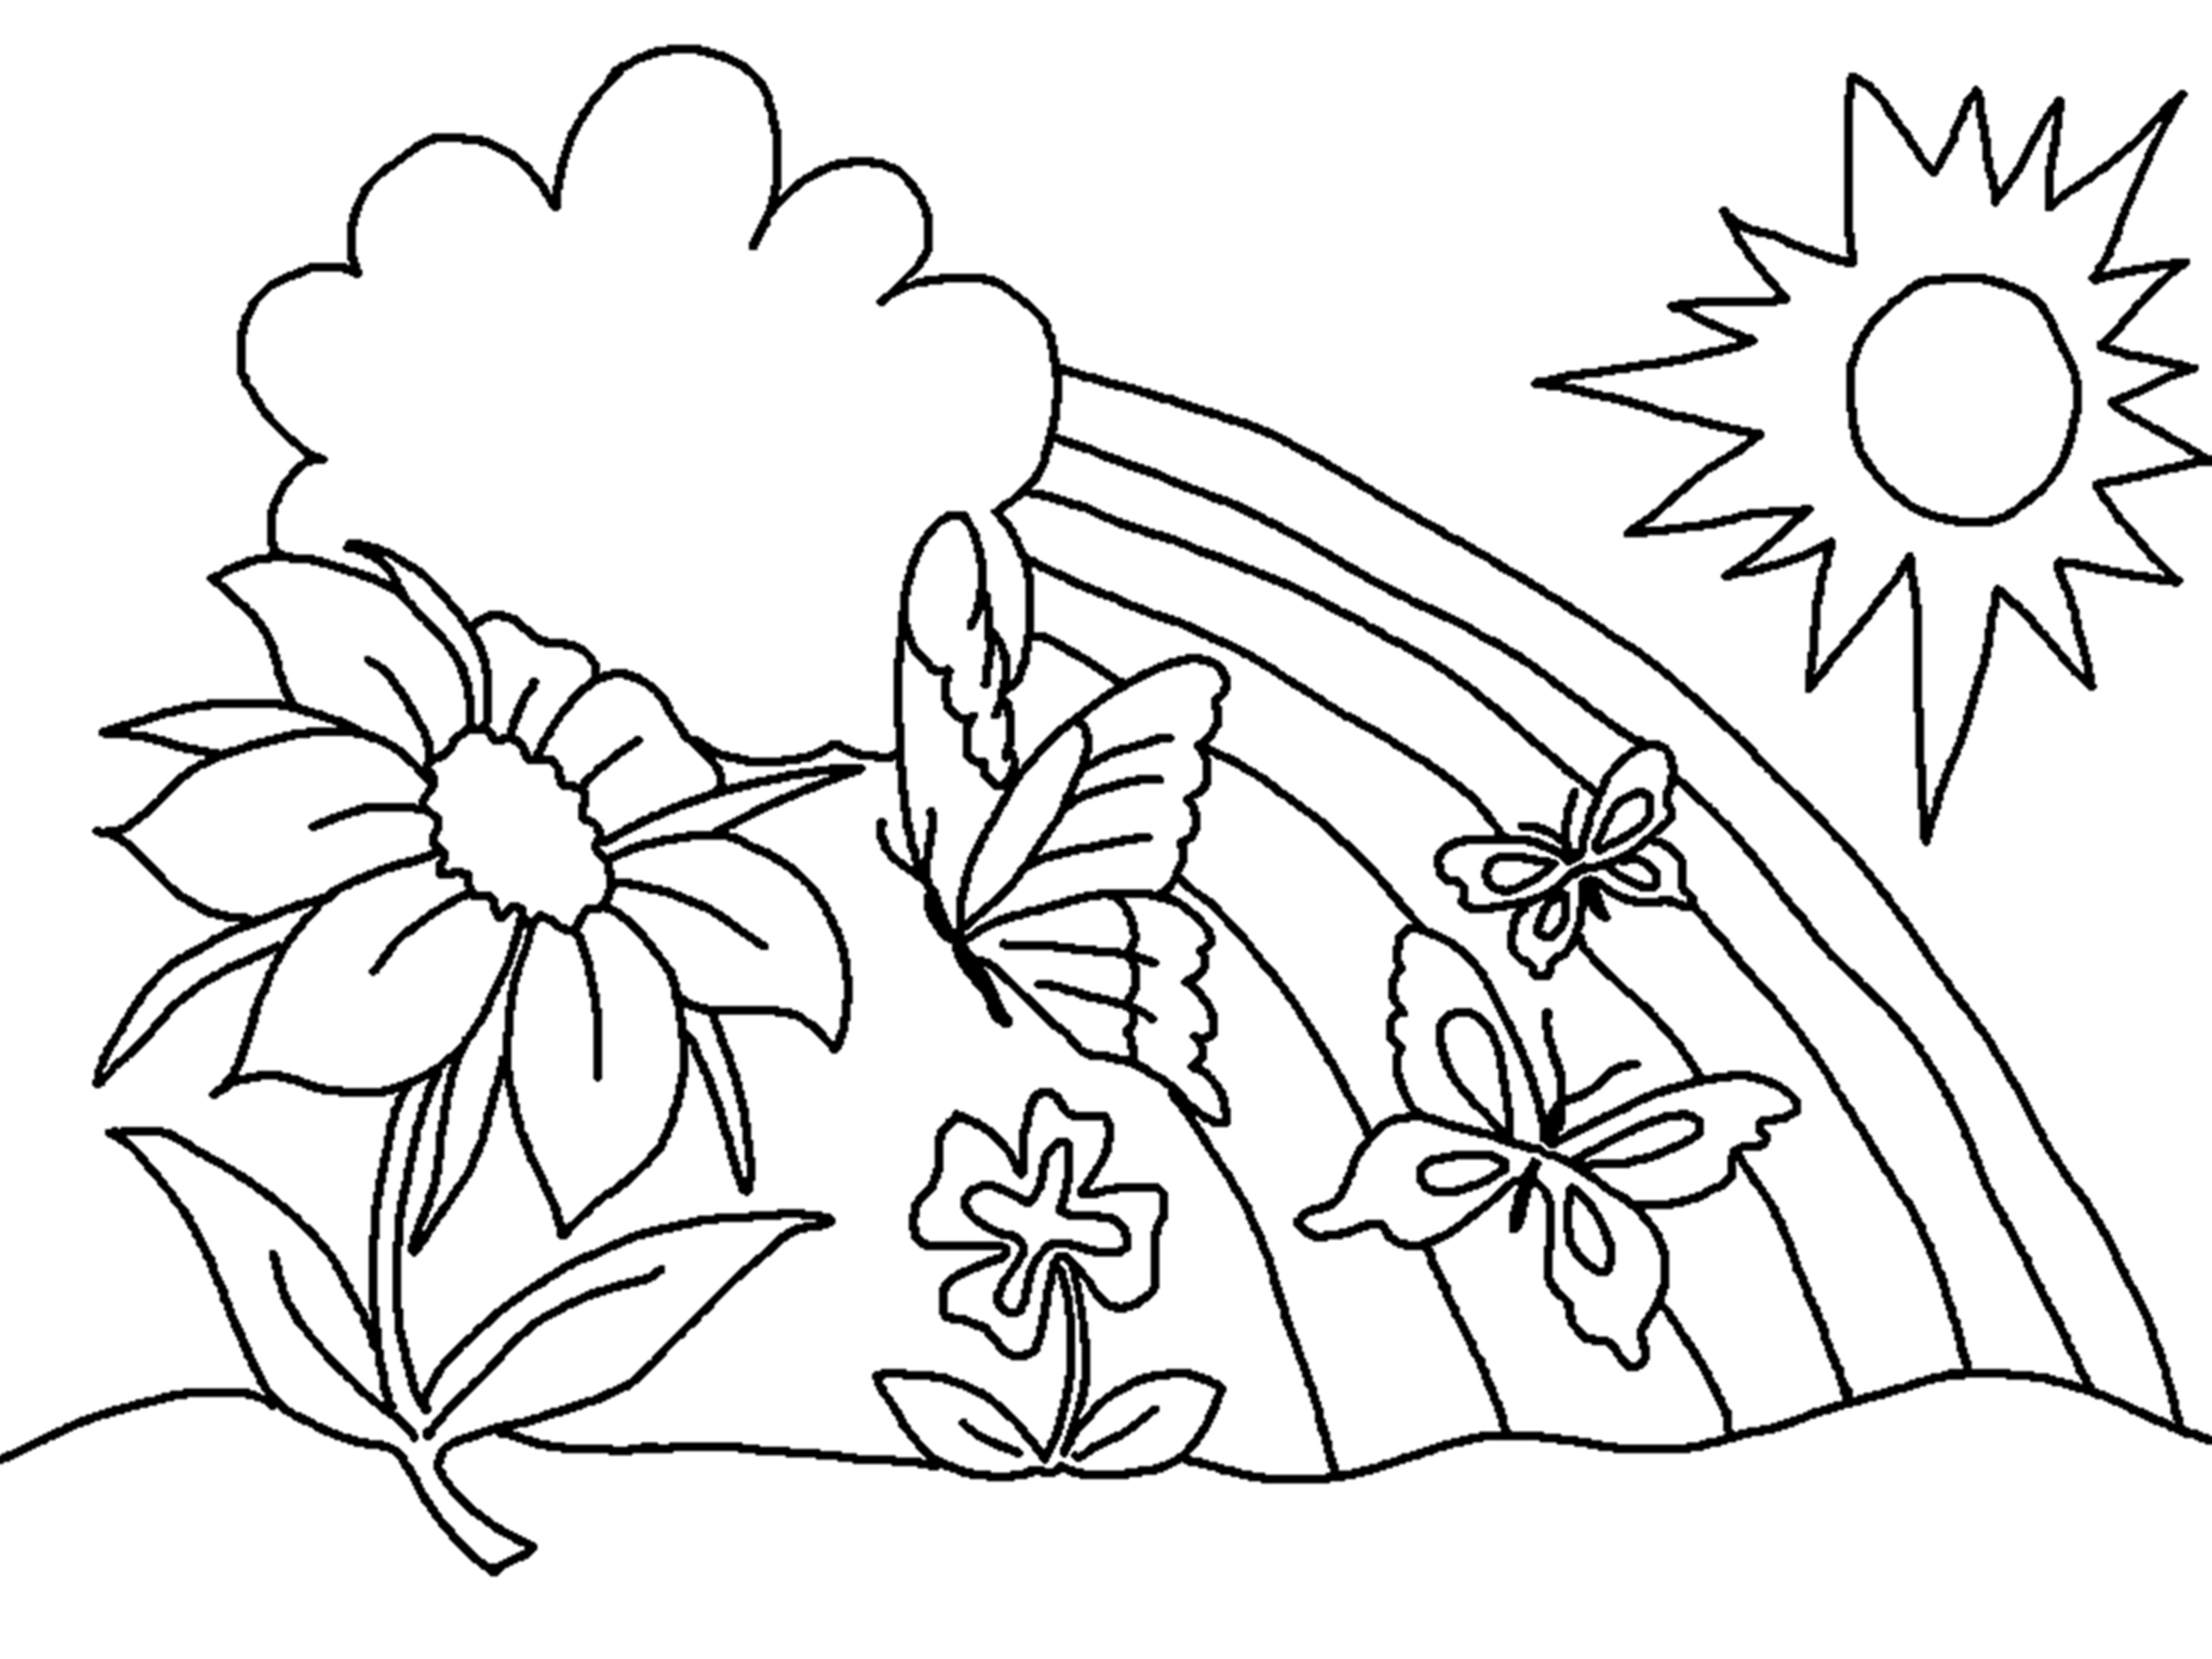 photo regarding Flower Coloring Pages Printable known as Totally free Printable Flower Coloring Internet pages For Youngsters - Perfect